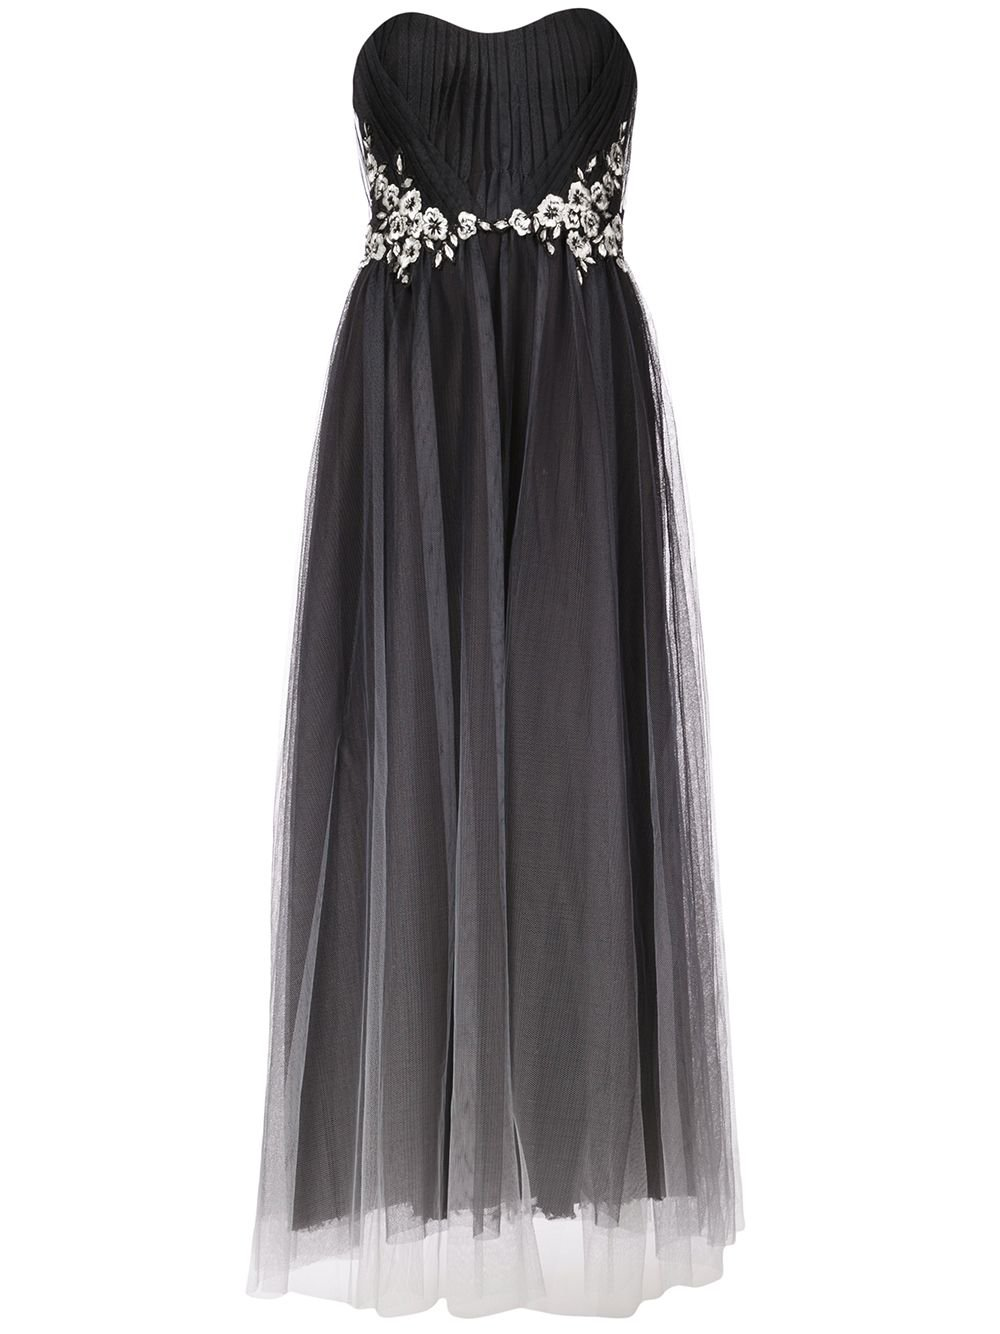 Marchesa Notte Strapless Tulle Dress | Farfetch.com